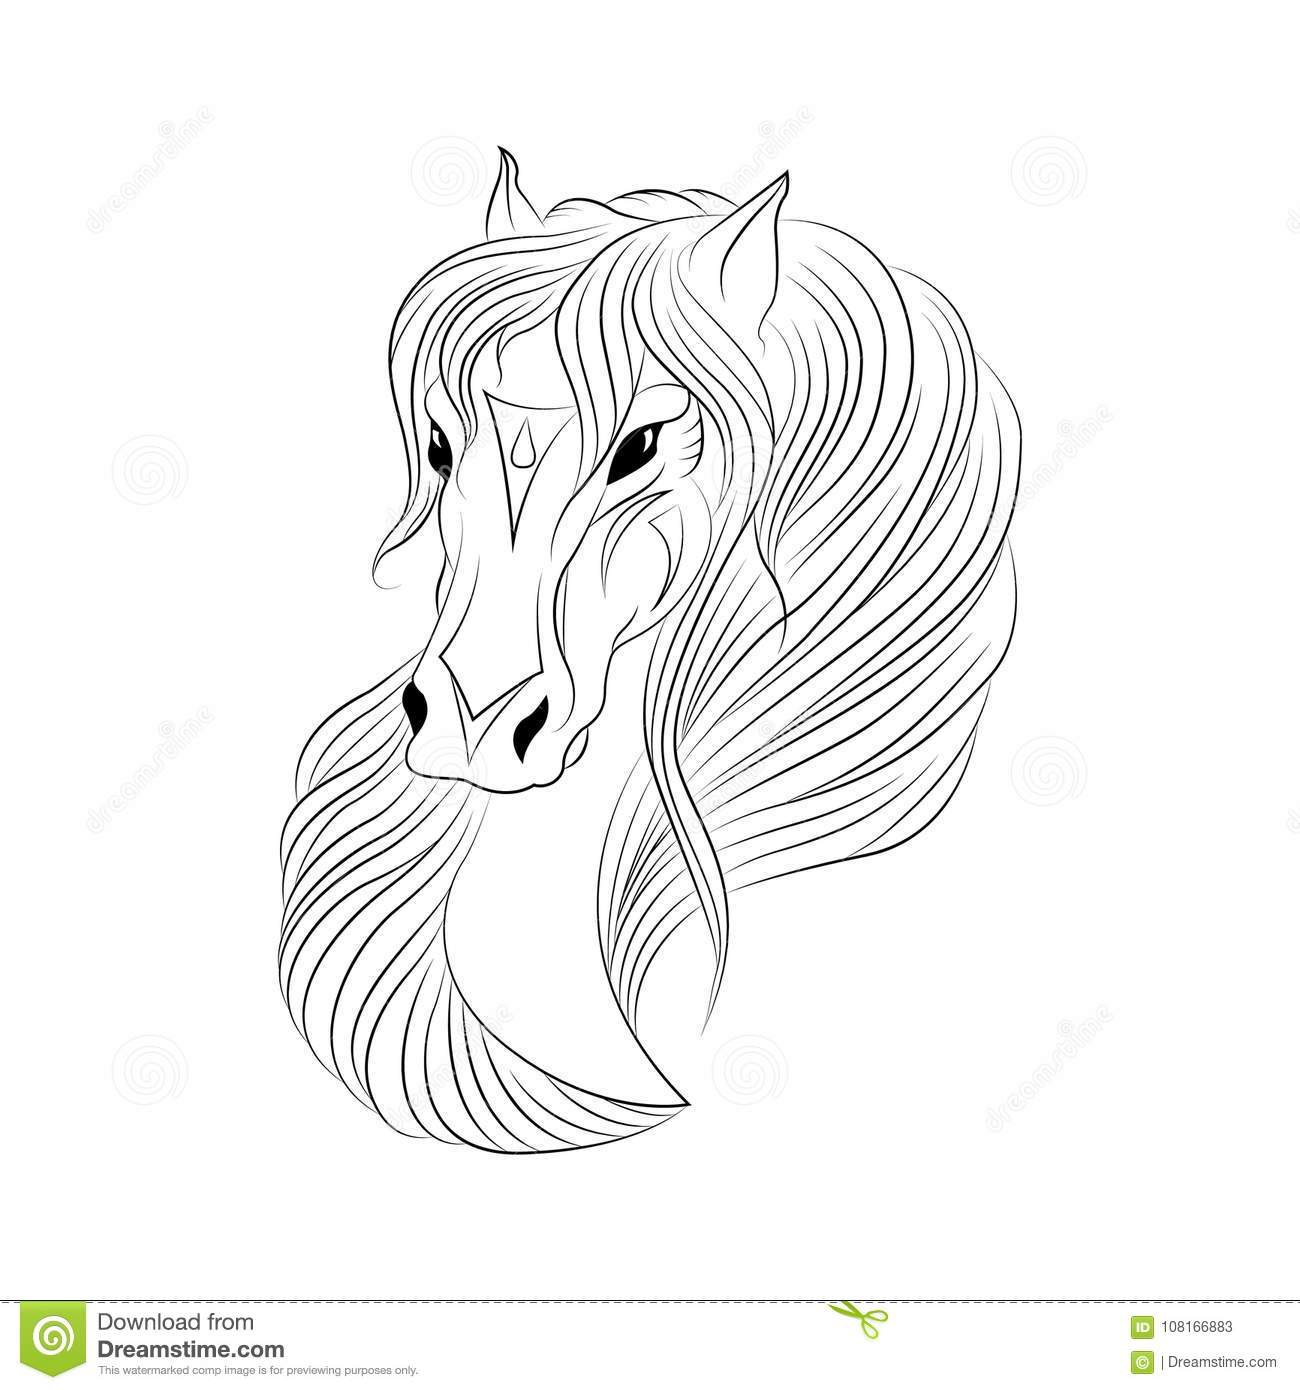 Line Drawing Of A Horse Head Stock Illustration Illustration Of Portrait Brush 108166883